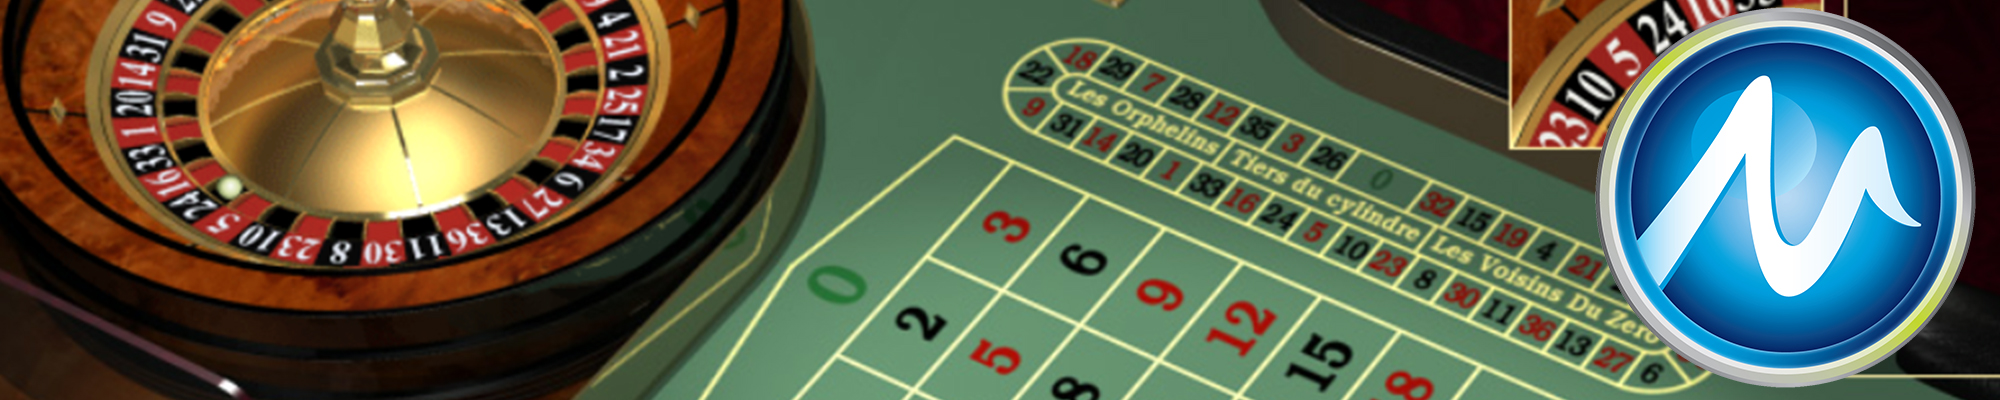 Microgaming roulette options